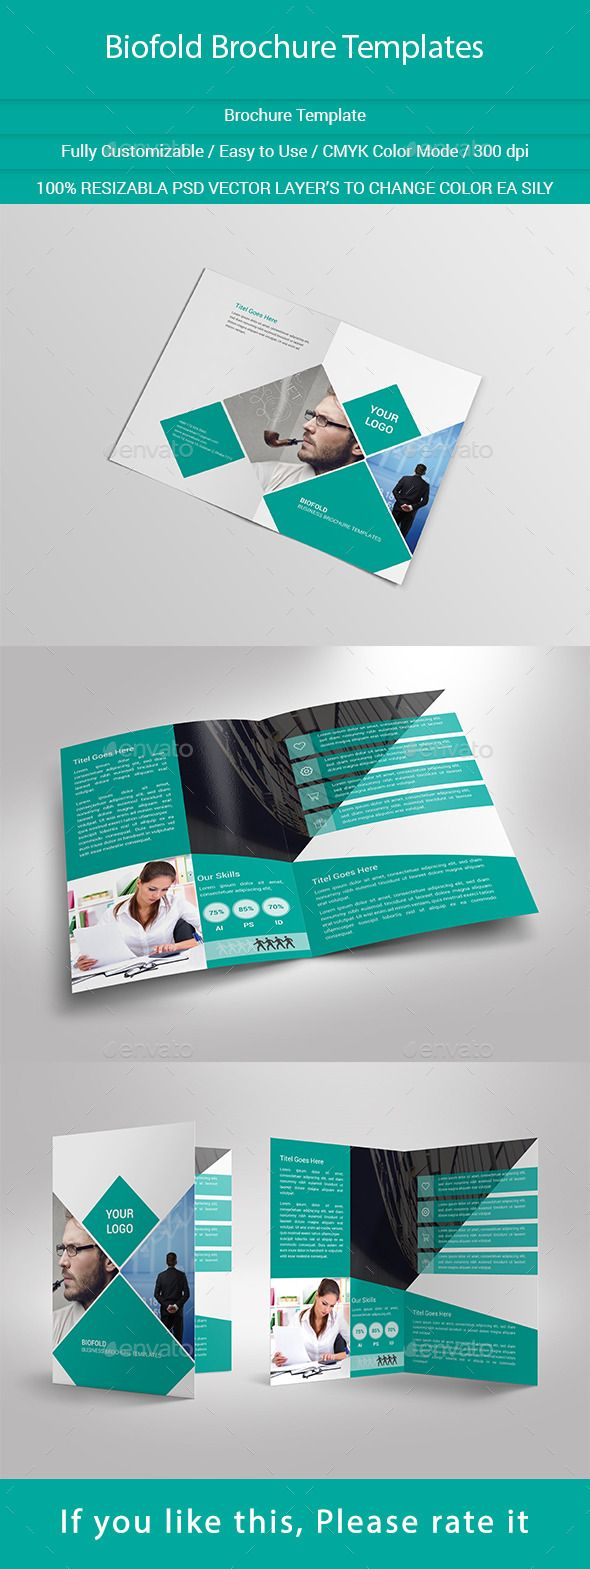 Nice 1 Page Resume Format Free Download Tall 100 Free Resume Builder And Download Clean 100 Free Resume Builder Online 1099 Contract Template Youthful 15 Year Old Resume Black2 Circle Template Biofold Brochure Templates | Modello Di Brochure, Modelli E Brochure